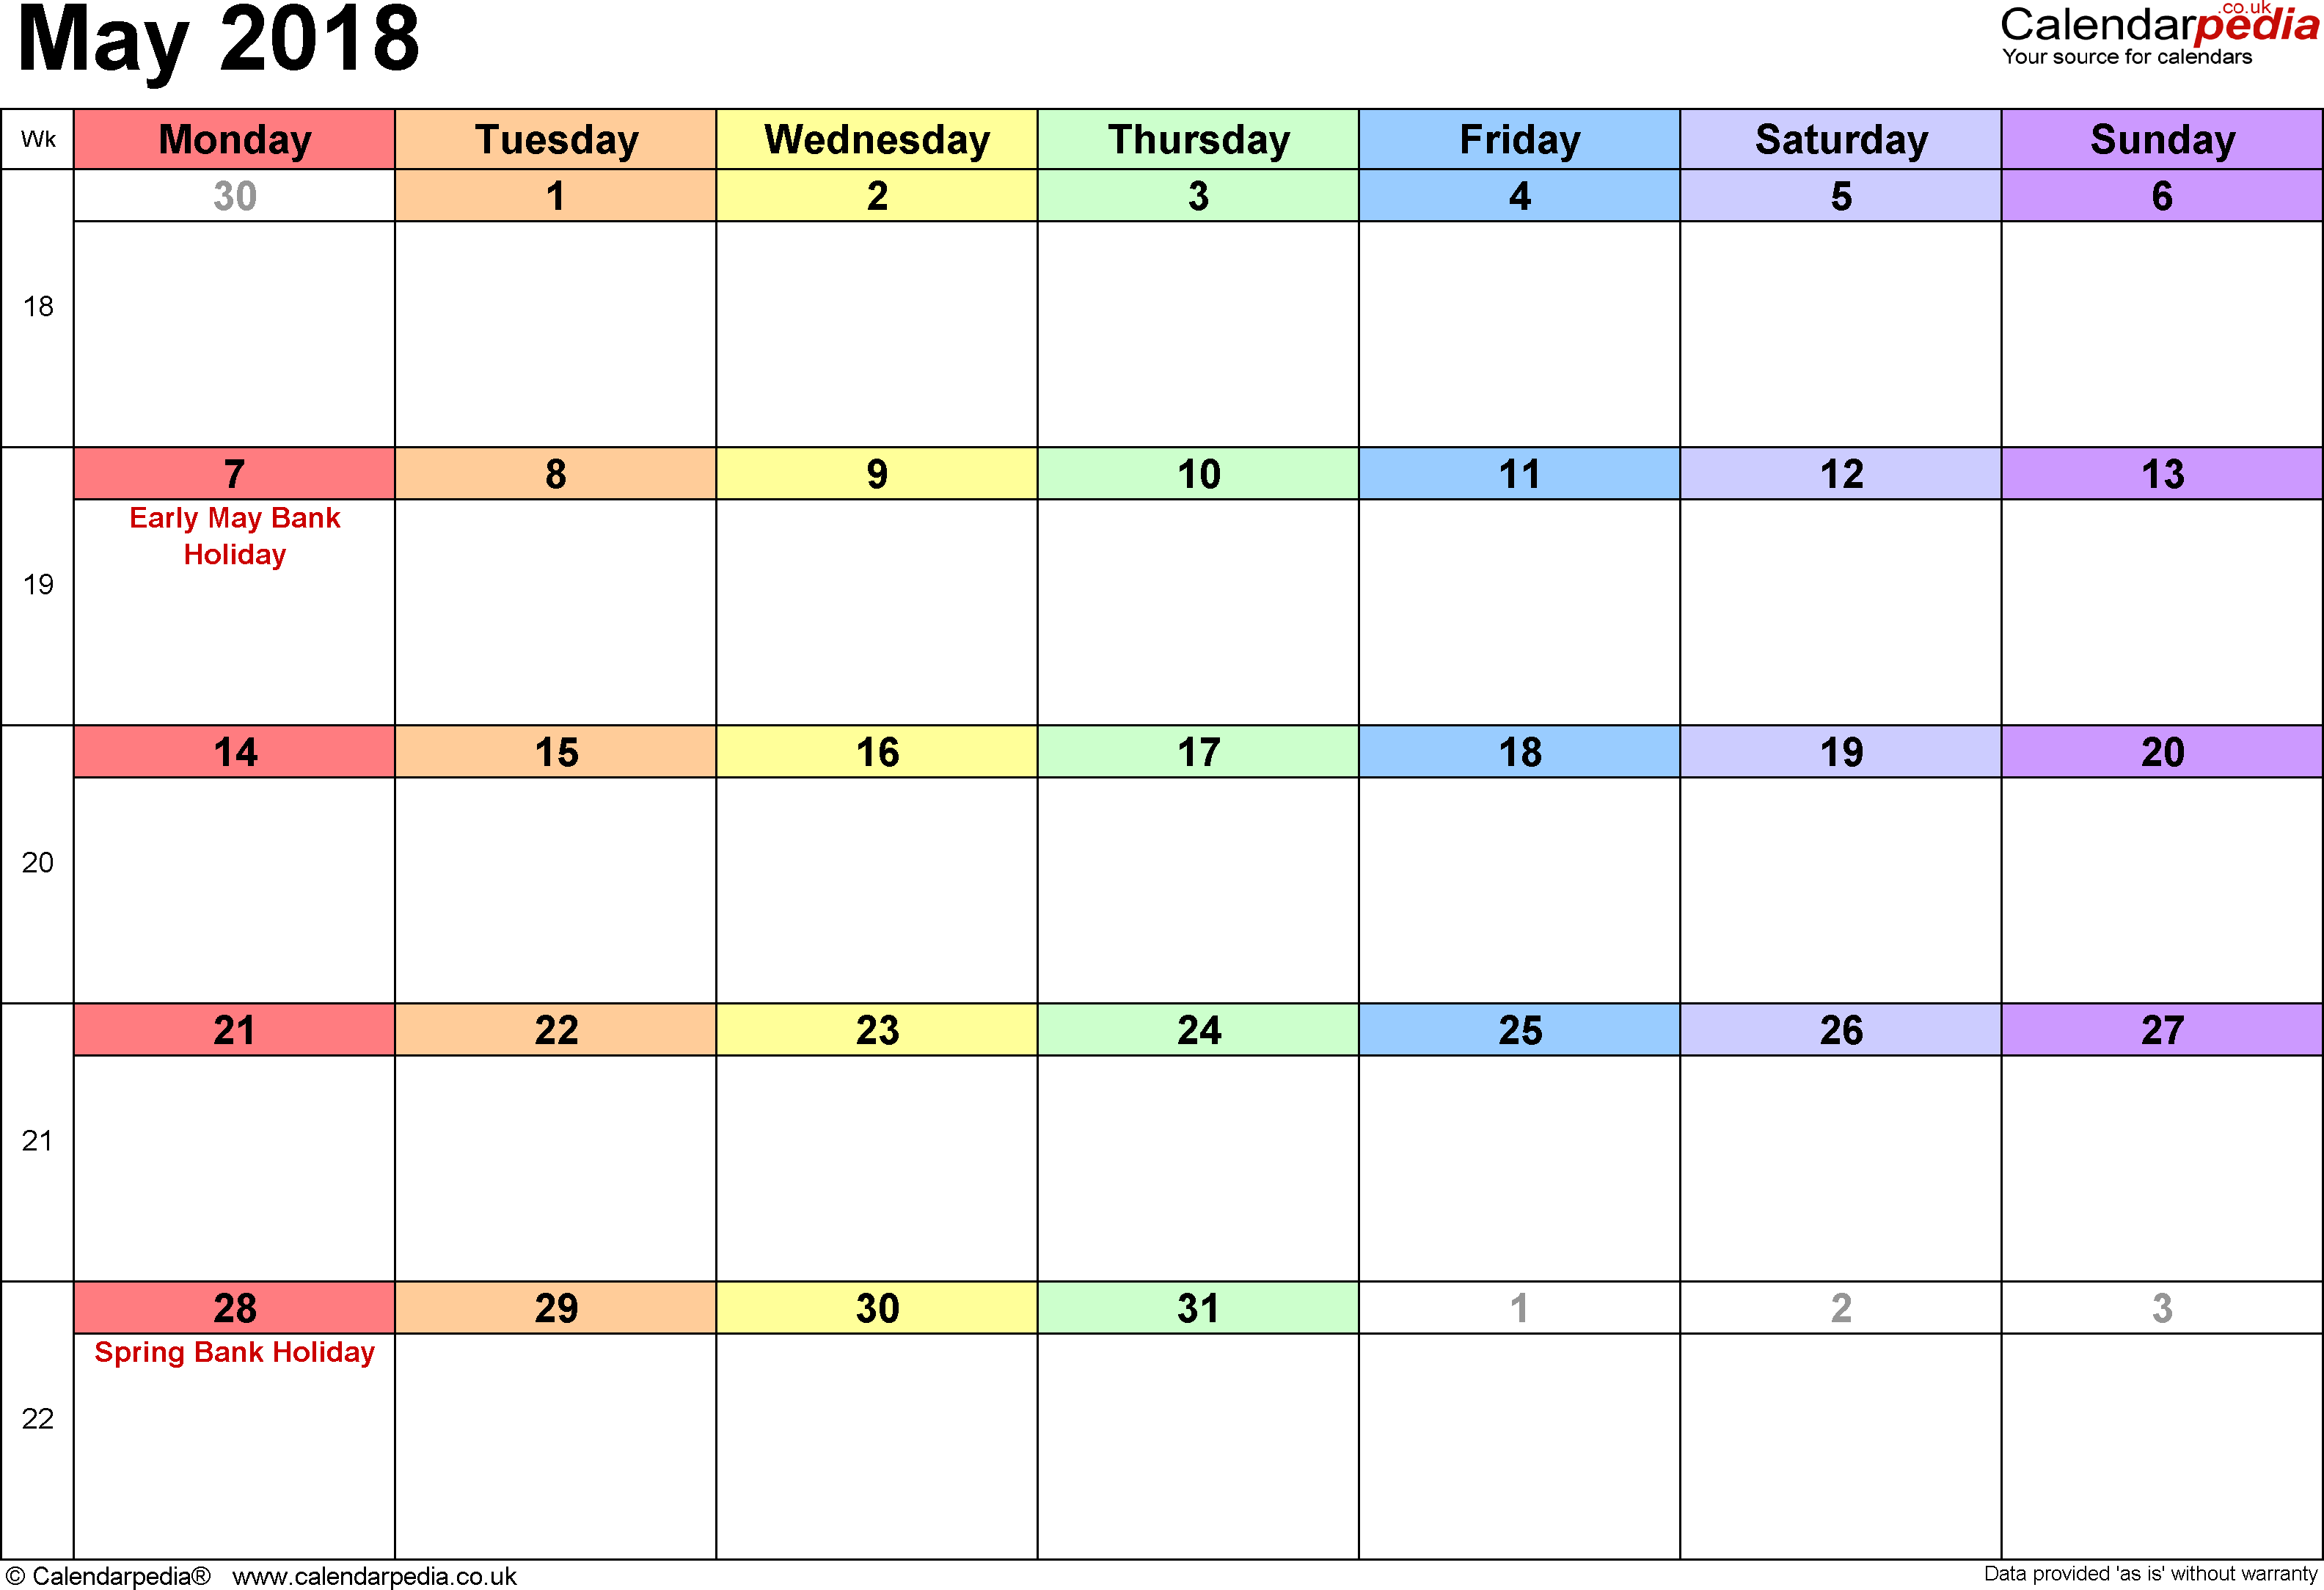 calendar may 2018 uk bank holidays excel pdf word templates